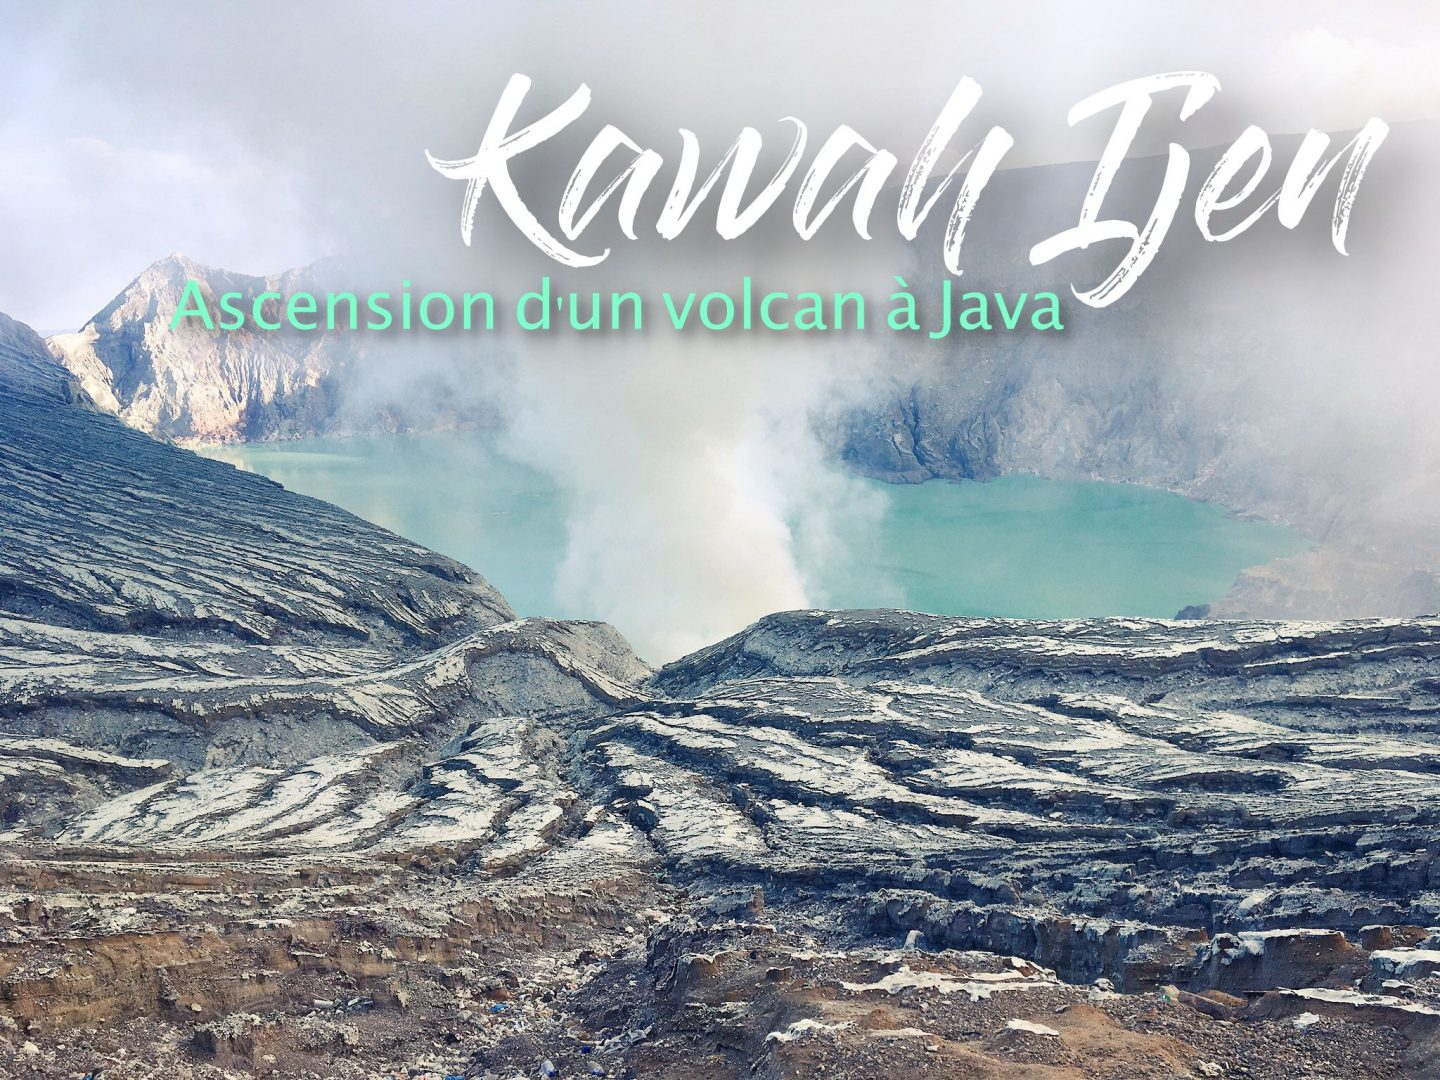 Kawah Ijen : l'ascension d'un volcan à Java